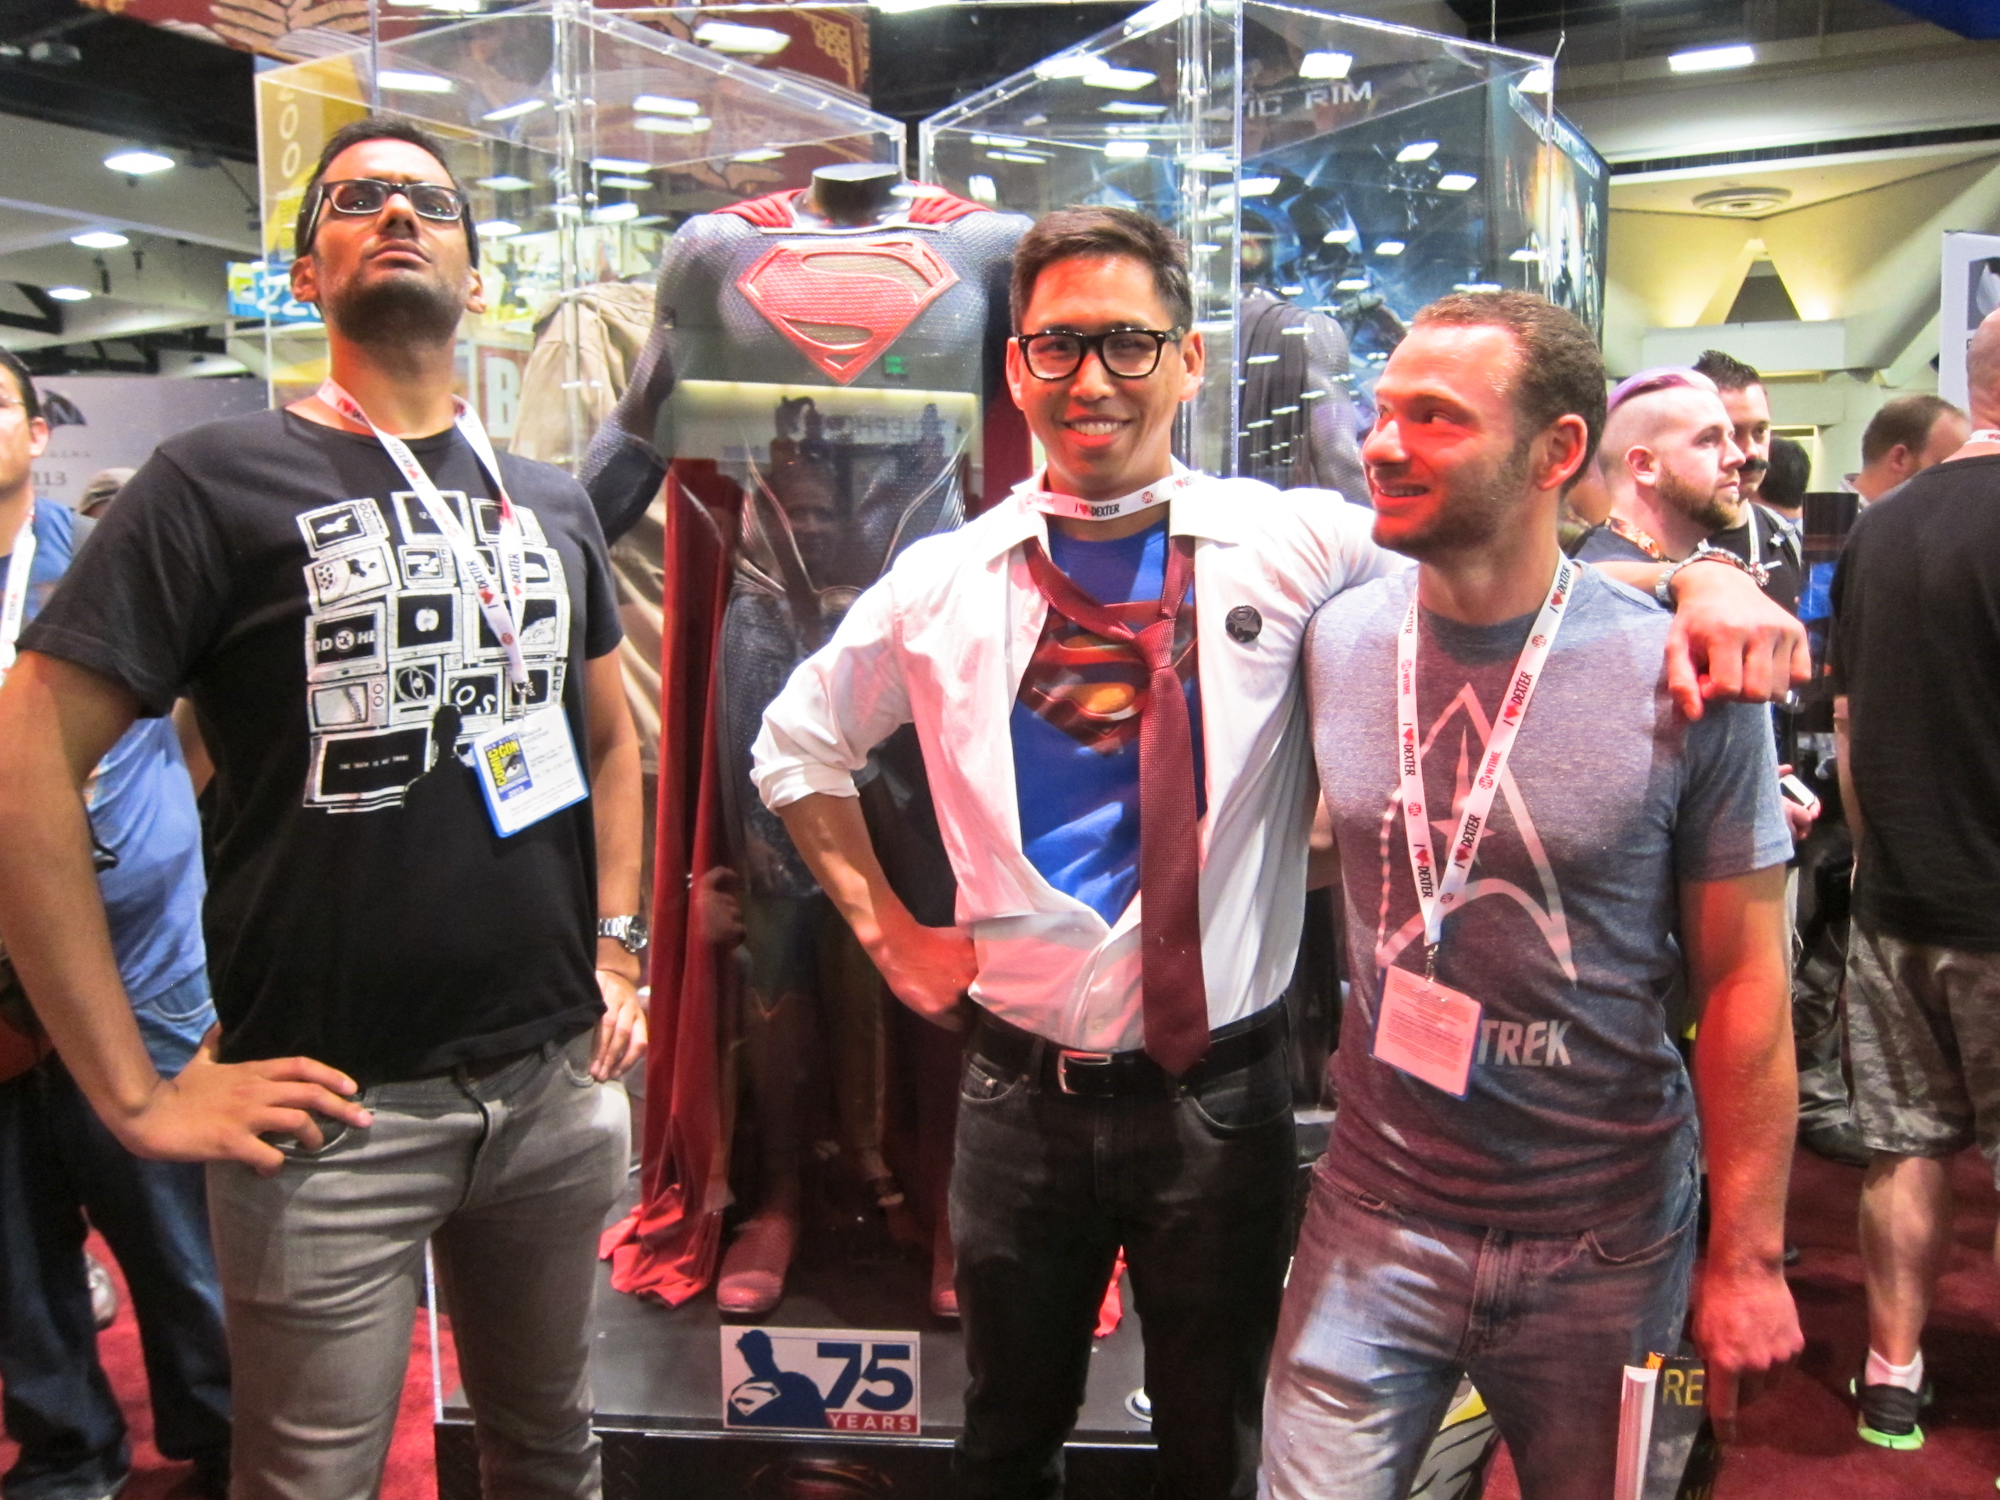 Hanging out with my friends is always the best part of comic-con. San Diego Comic Con 2013.